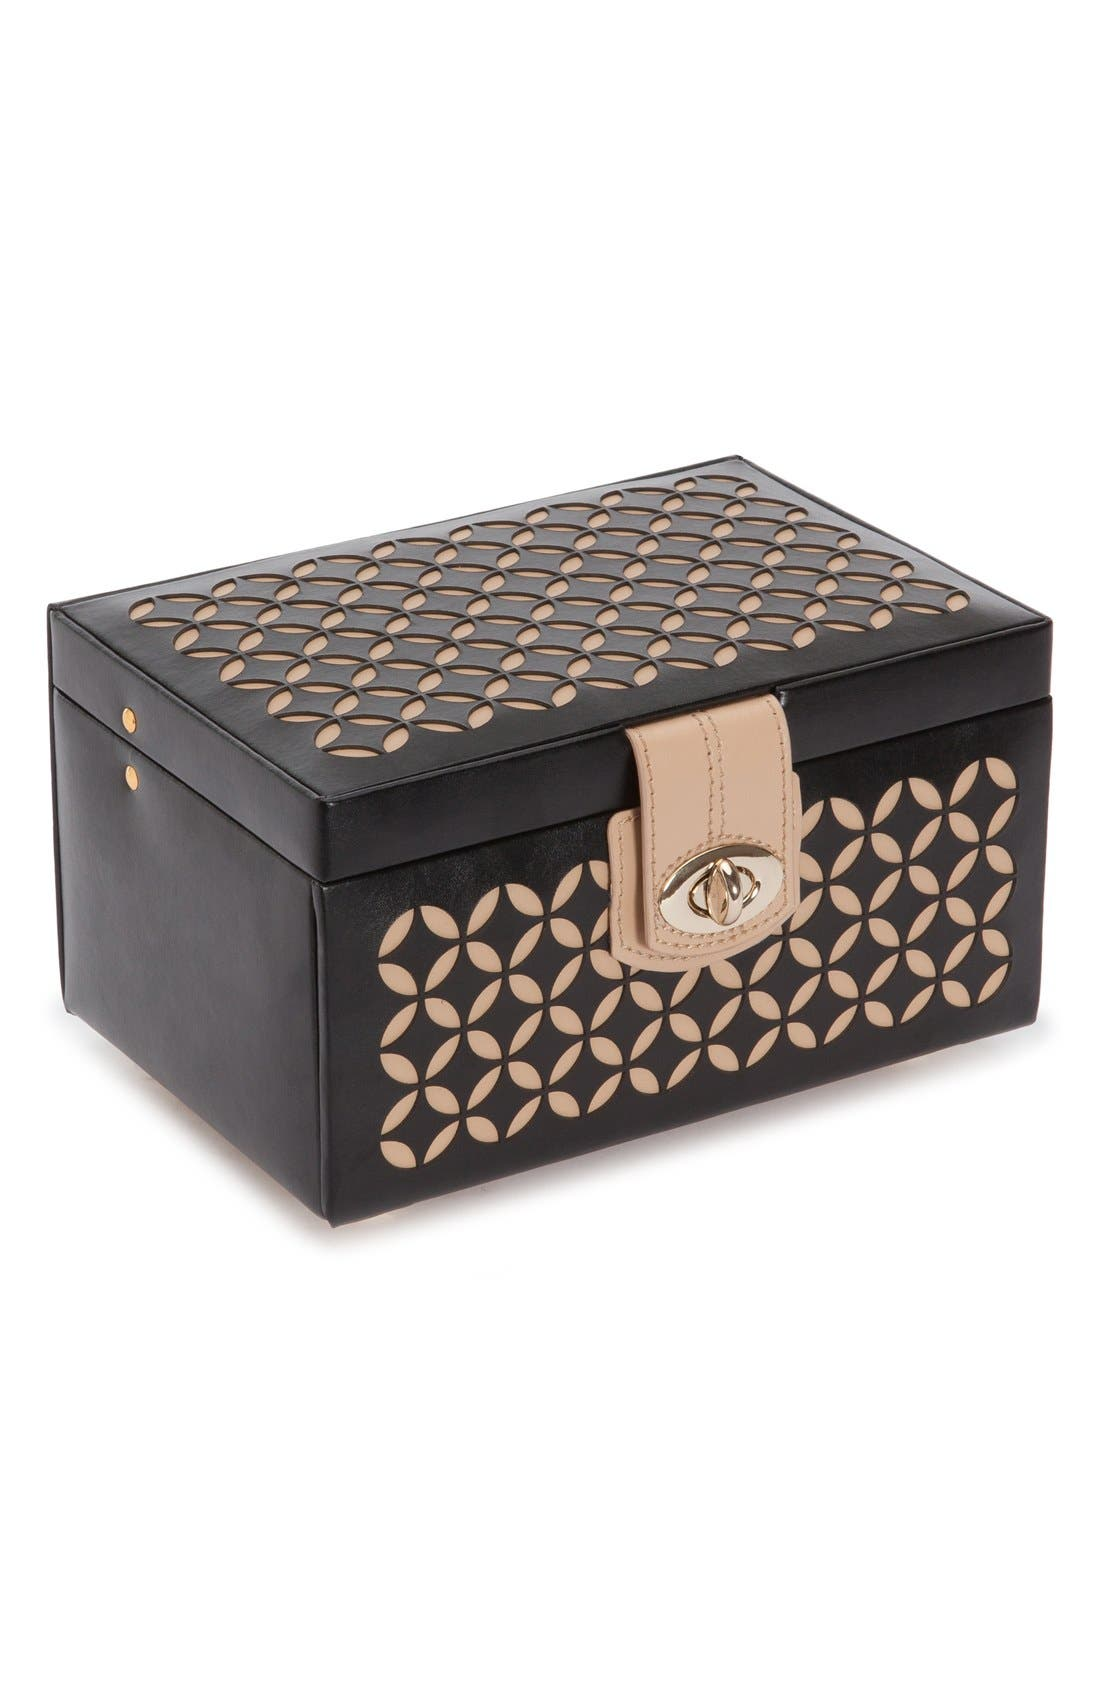 'Chloe' Jewelry Box,                             Alternate thumbnail 7, color,                             Black